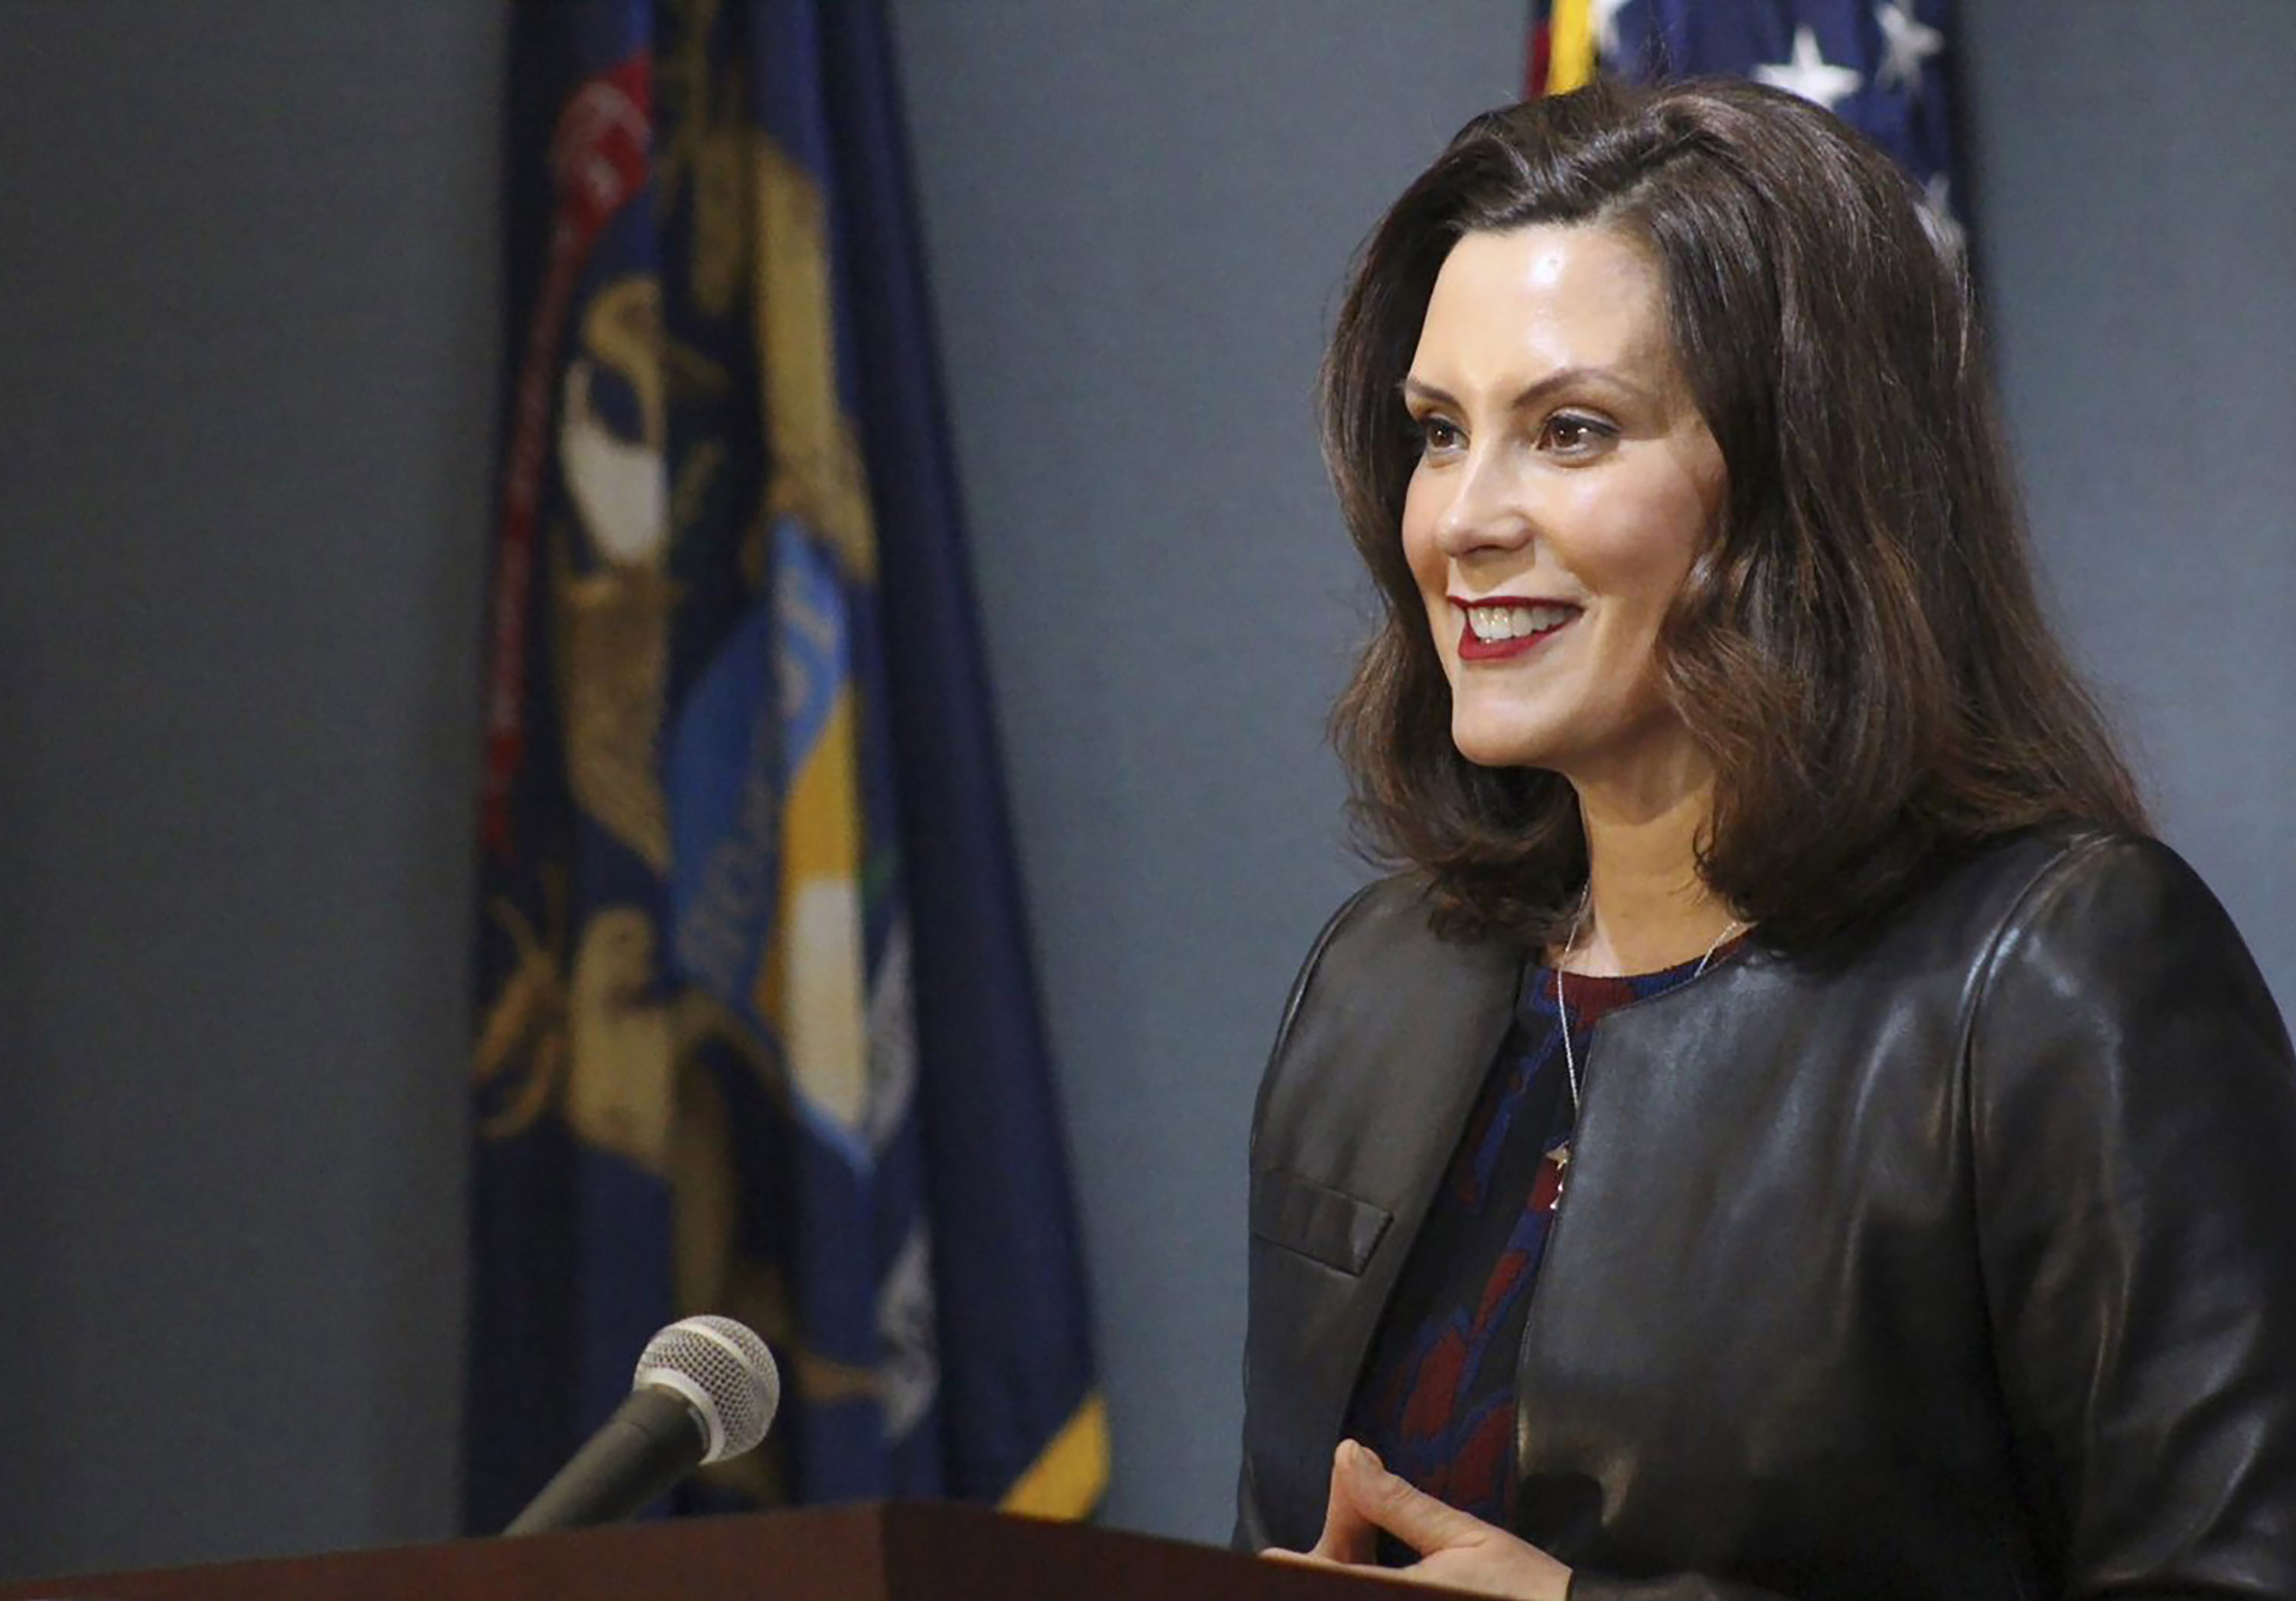 Michigan Gov. Whitmer says she censors herself when speaking about Trump to ensure continued federal assistance